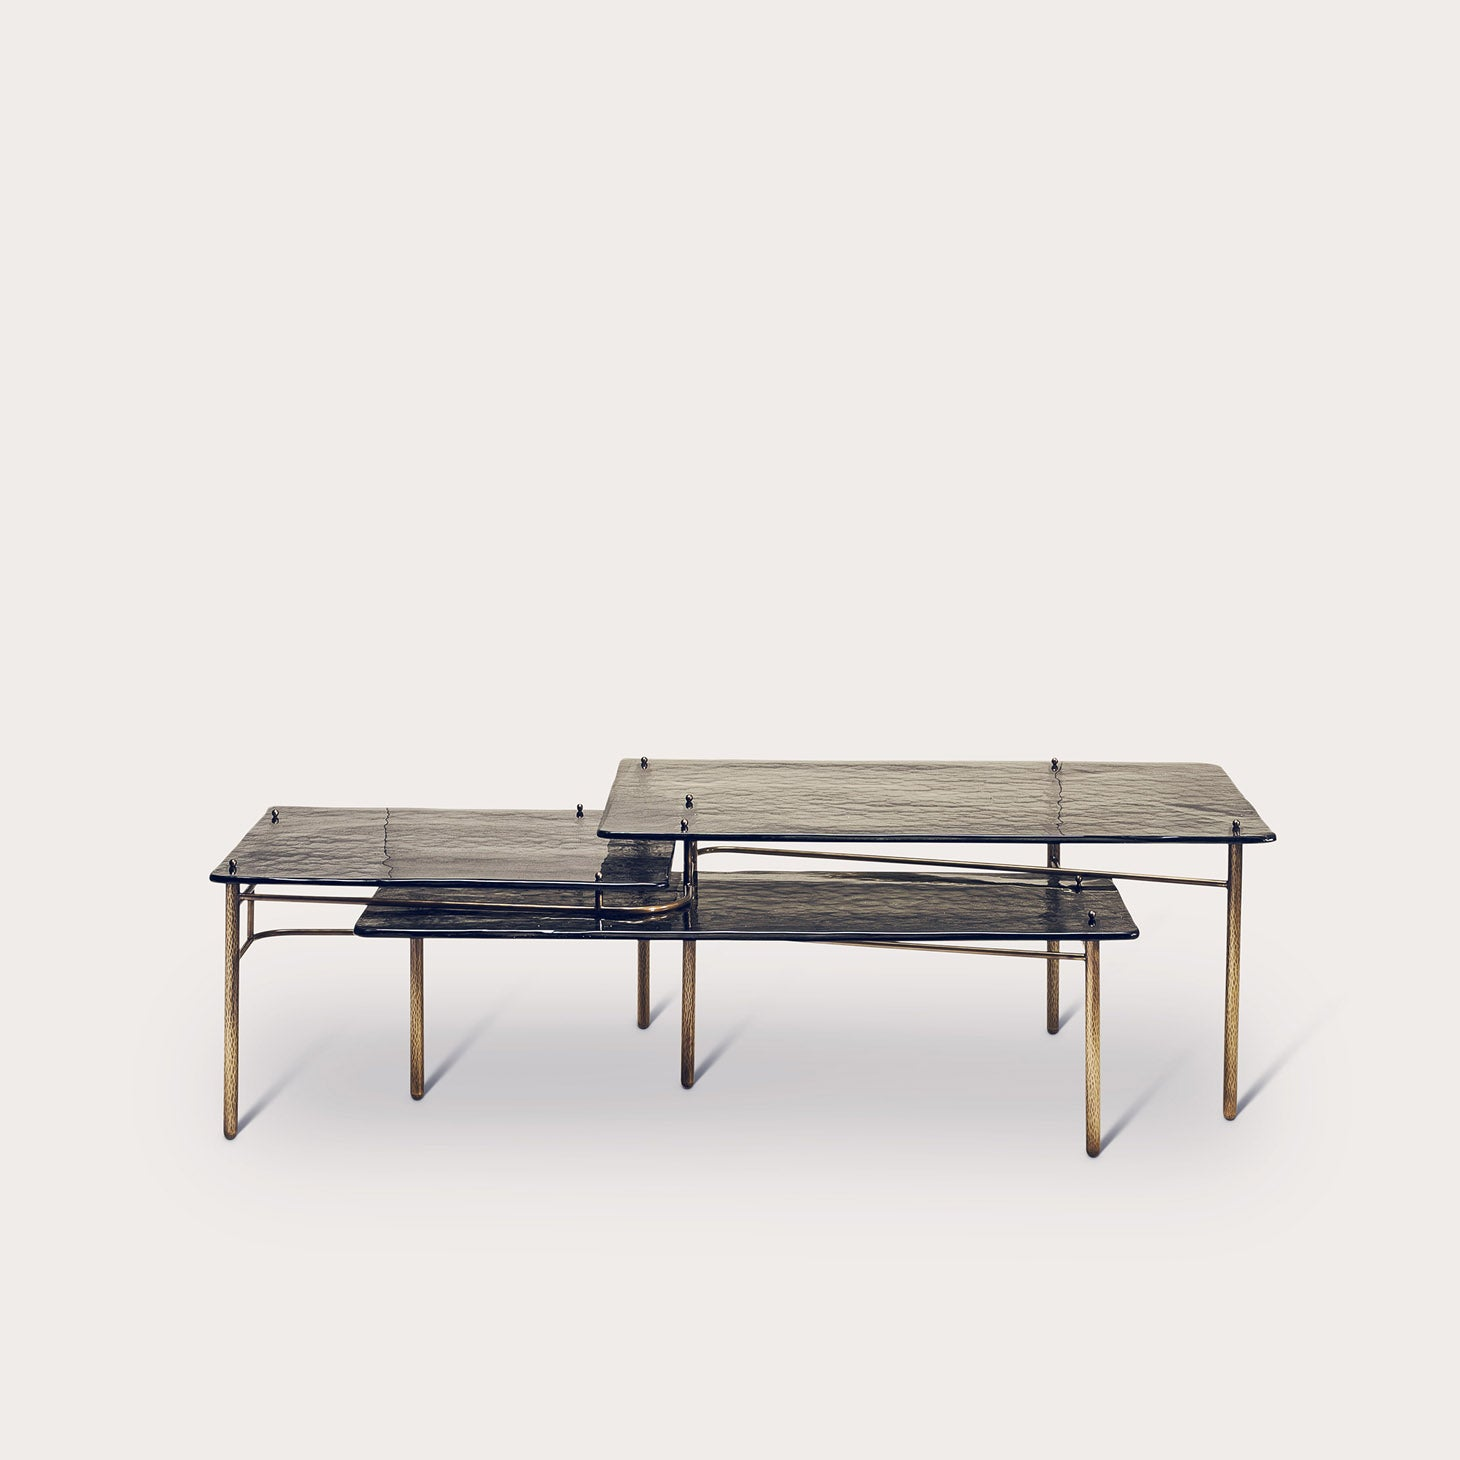 TARI Coffee Table Tables Bruno Moinard Designer Furniture Sku: 773-230-10007